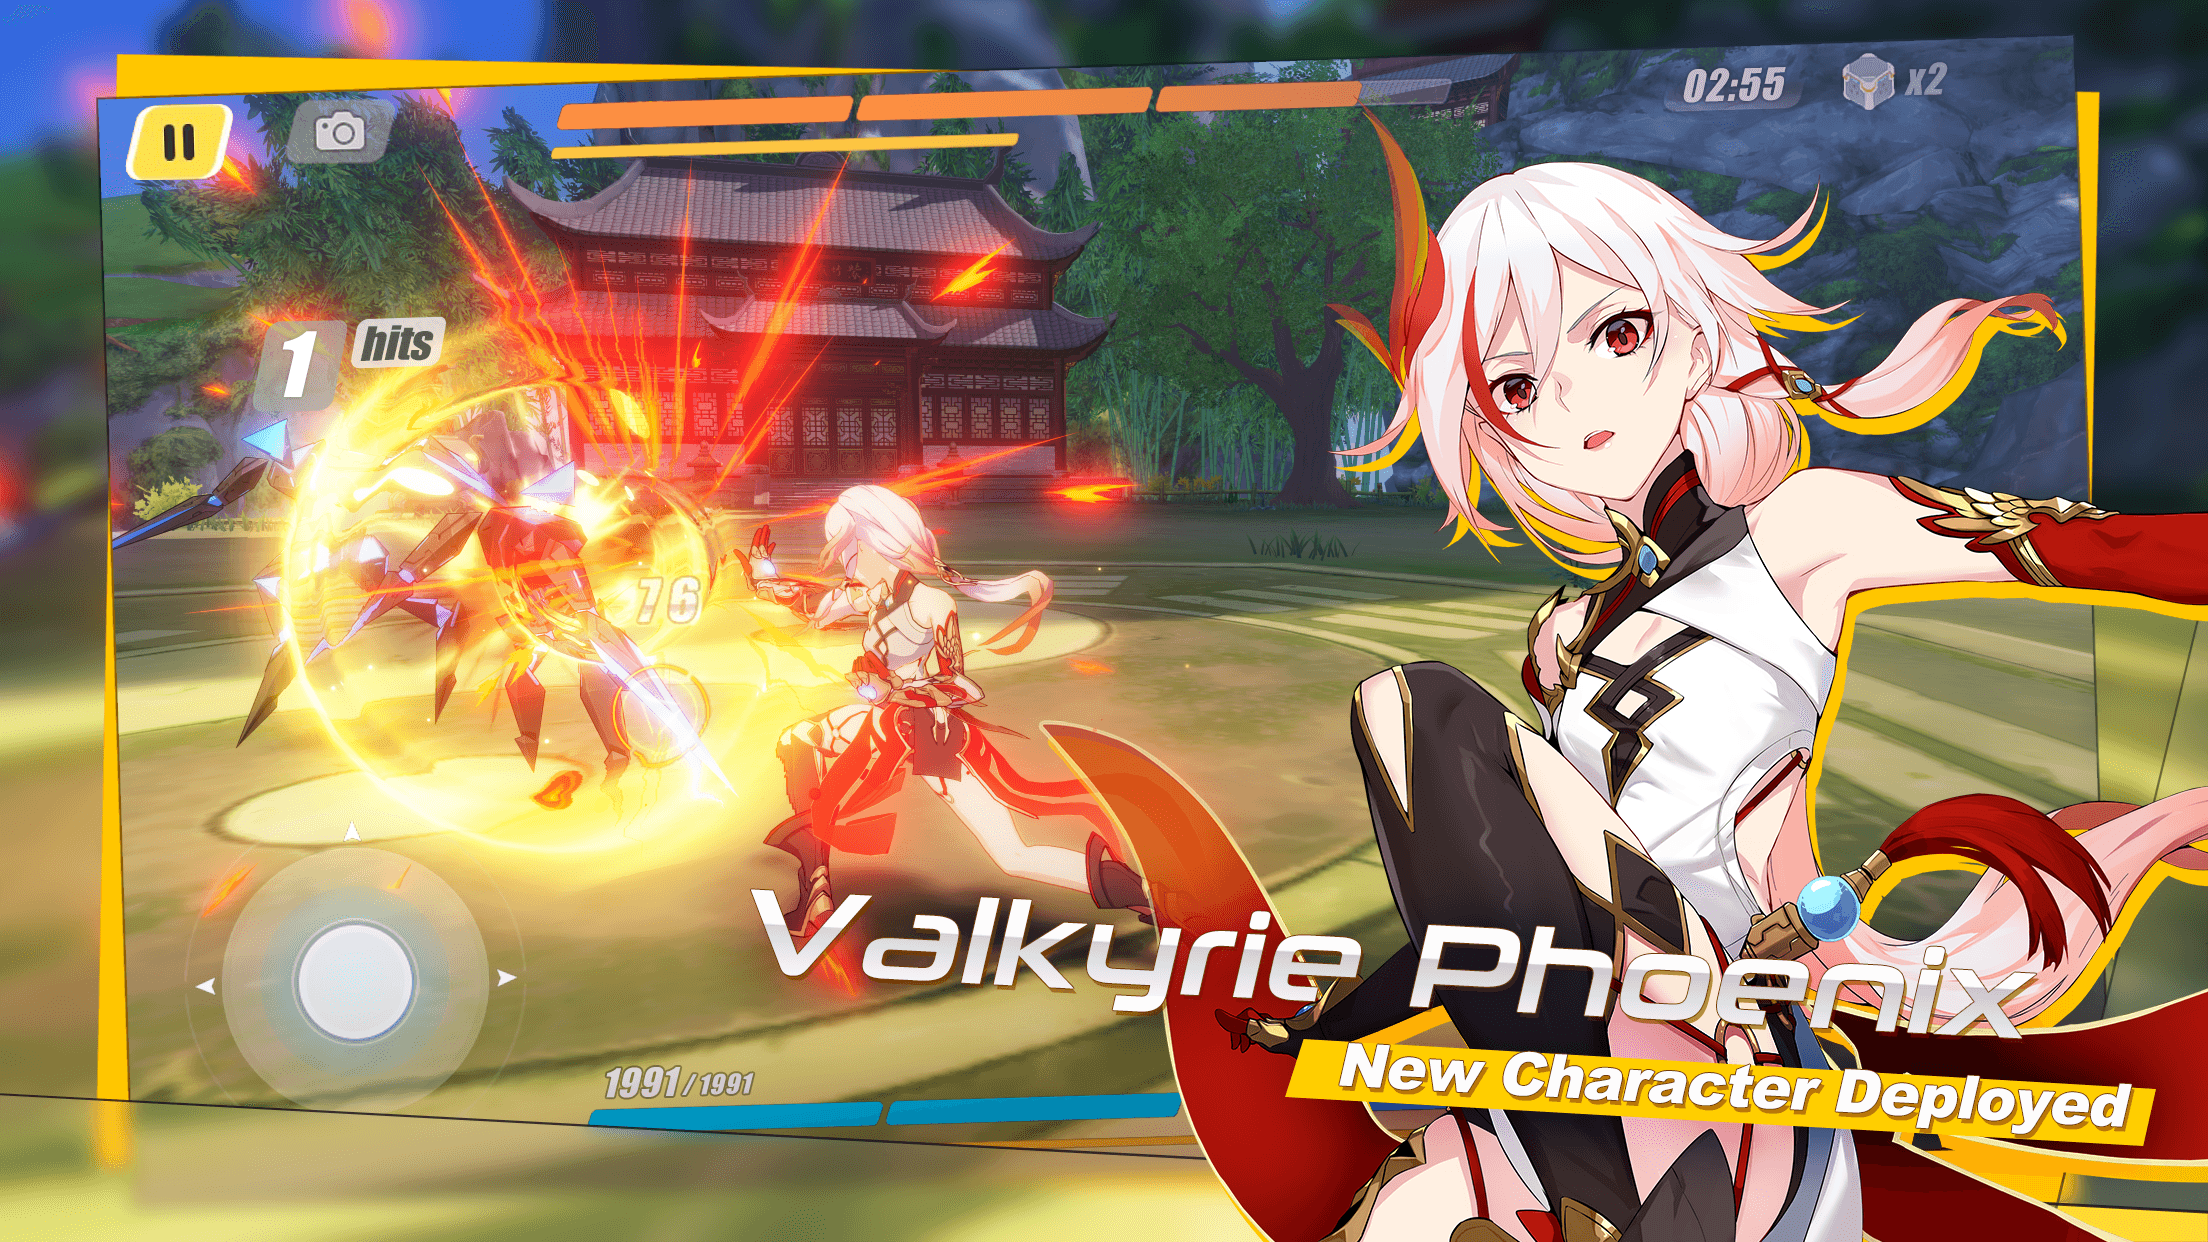 Download Honkai Impact 3 on PC with BlueStacks